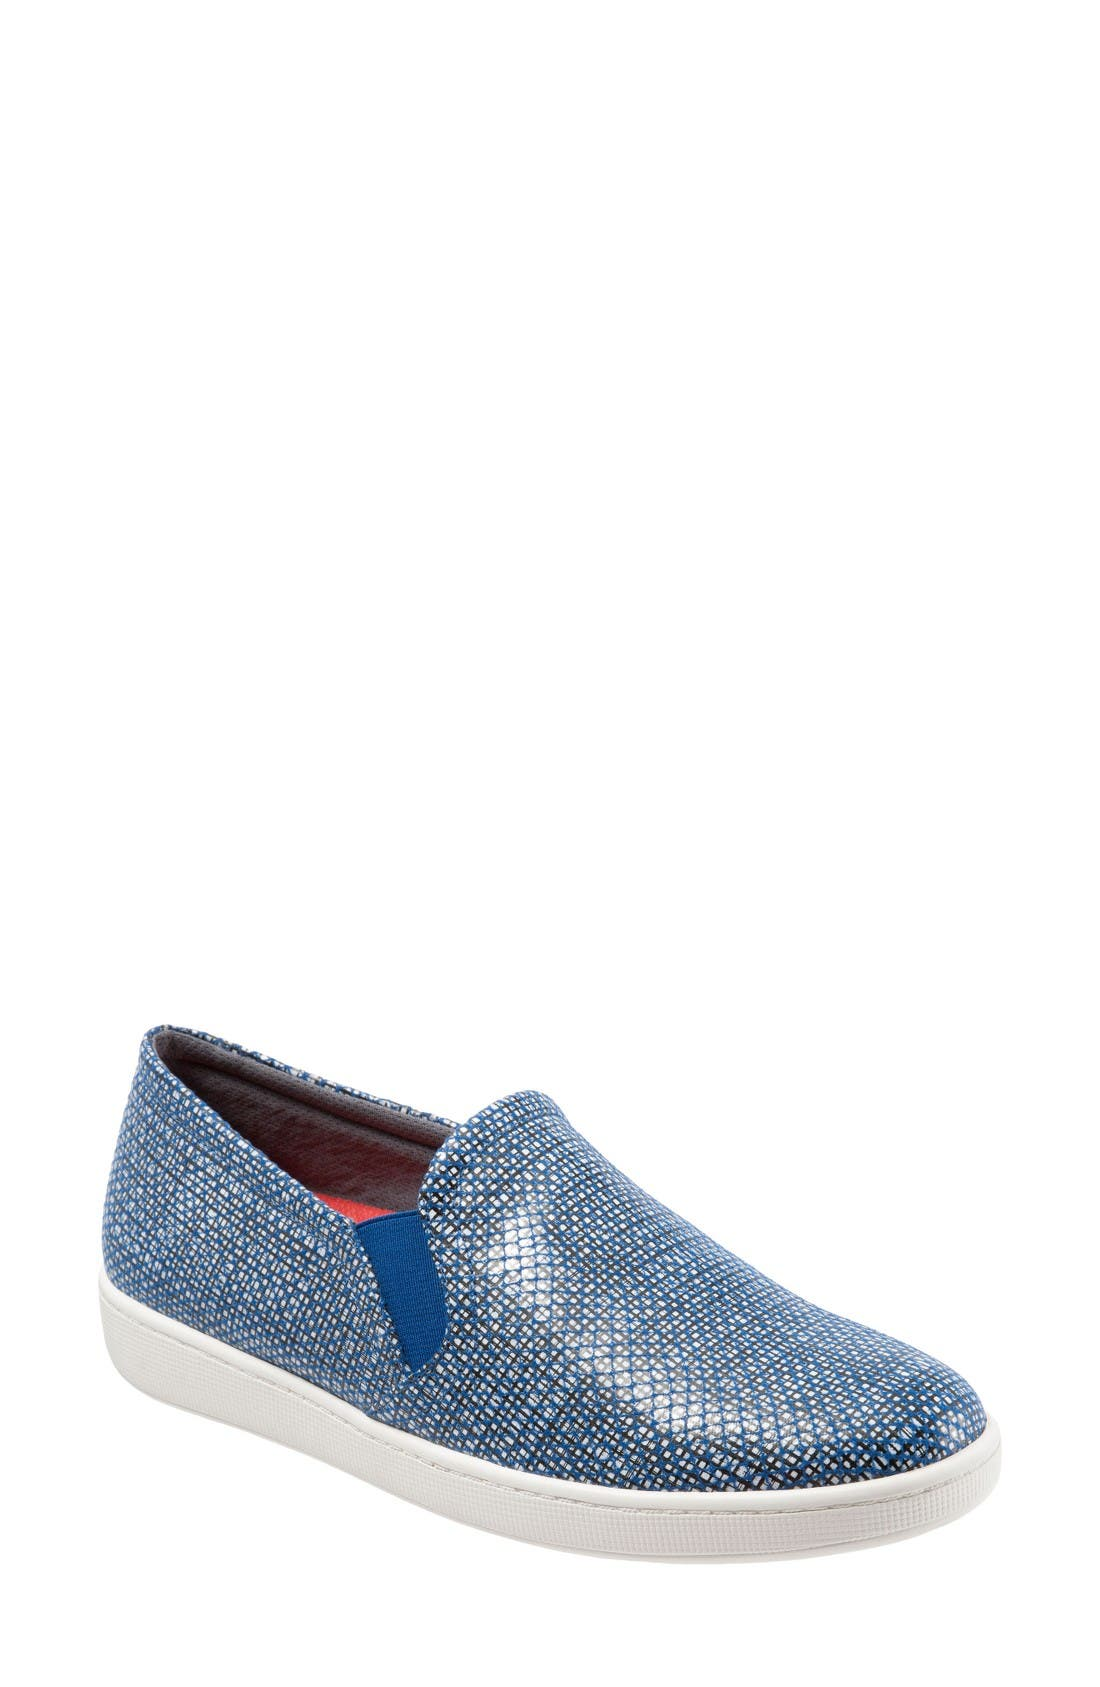 Main Image - Trotters 'Americana' Slip-On Sneaker (Women)